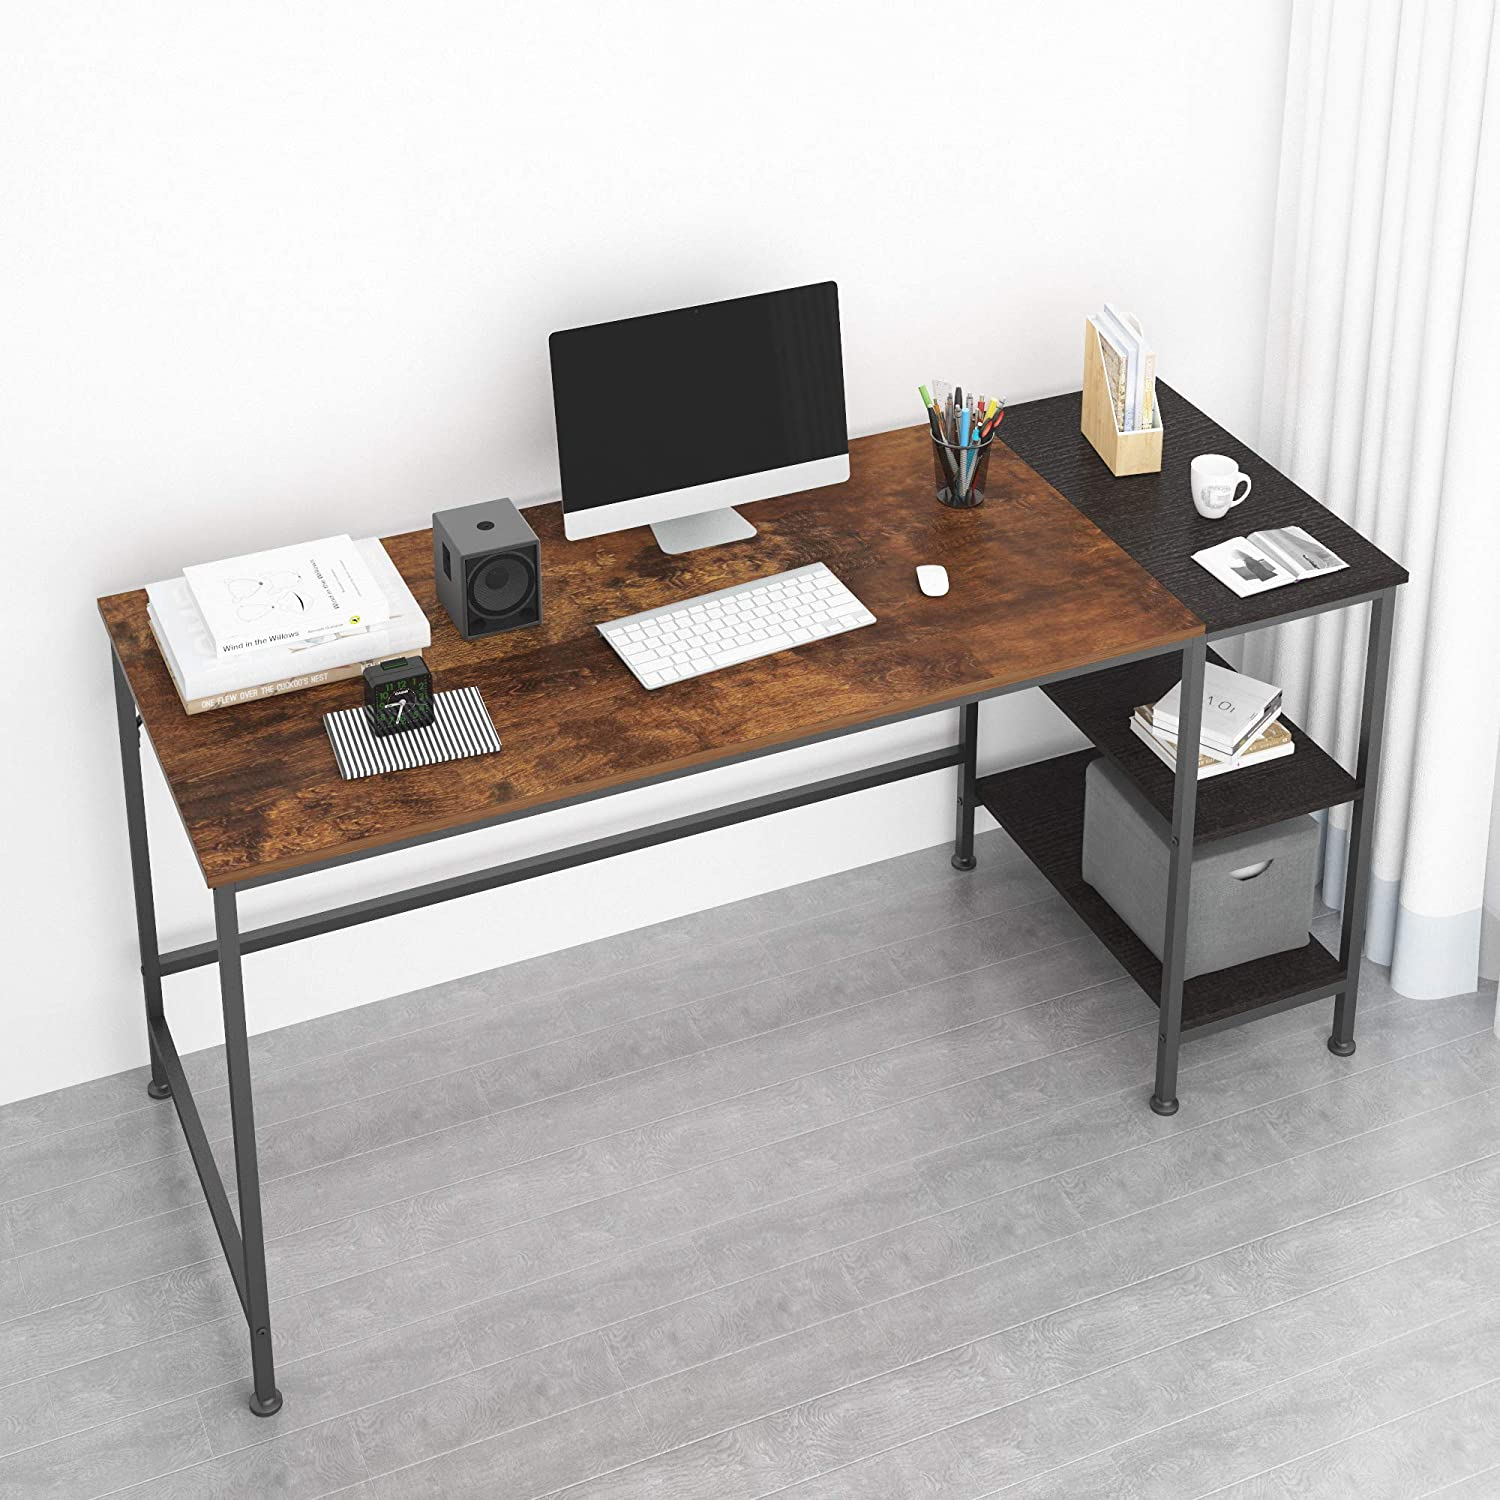 JOISCOPE Computer Desk with Shelves,Laptop Table with Wooden Drawer,60 inches(Vintage Oak Finish)